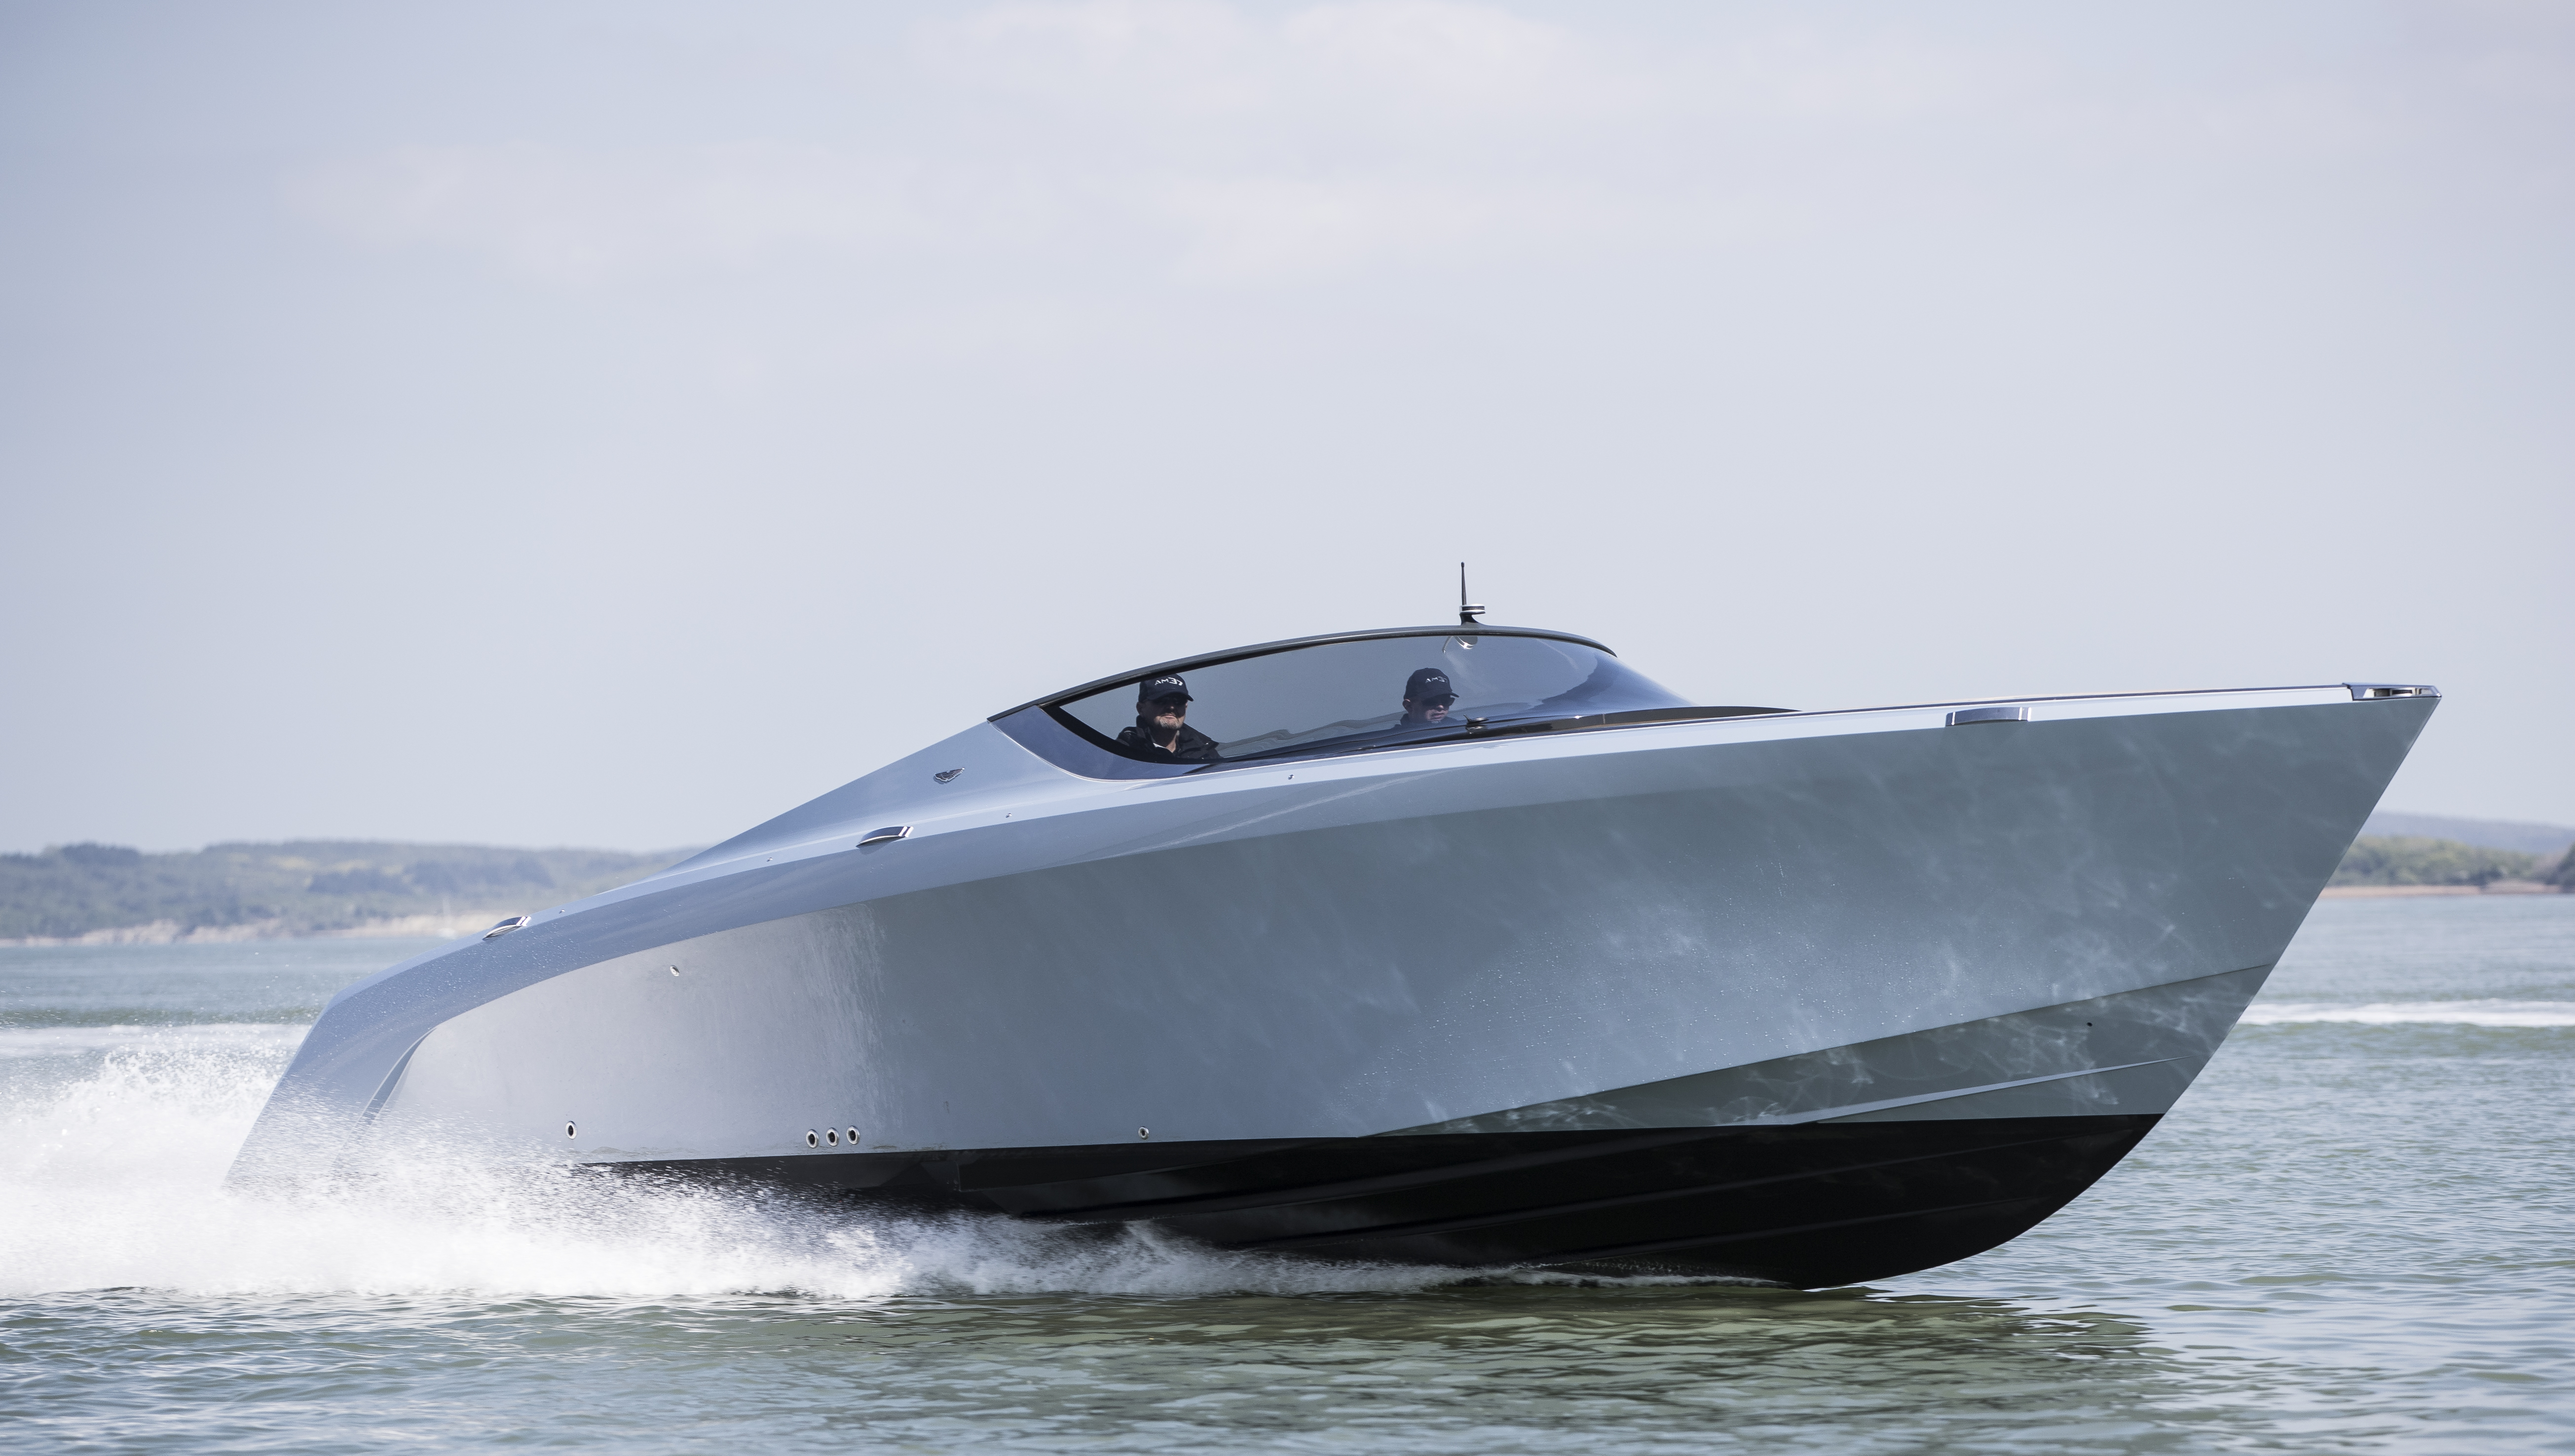 Pictures: First Aston Martin AM37 hull is delivered - YBW